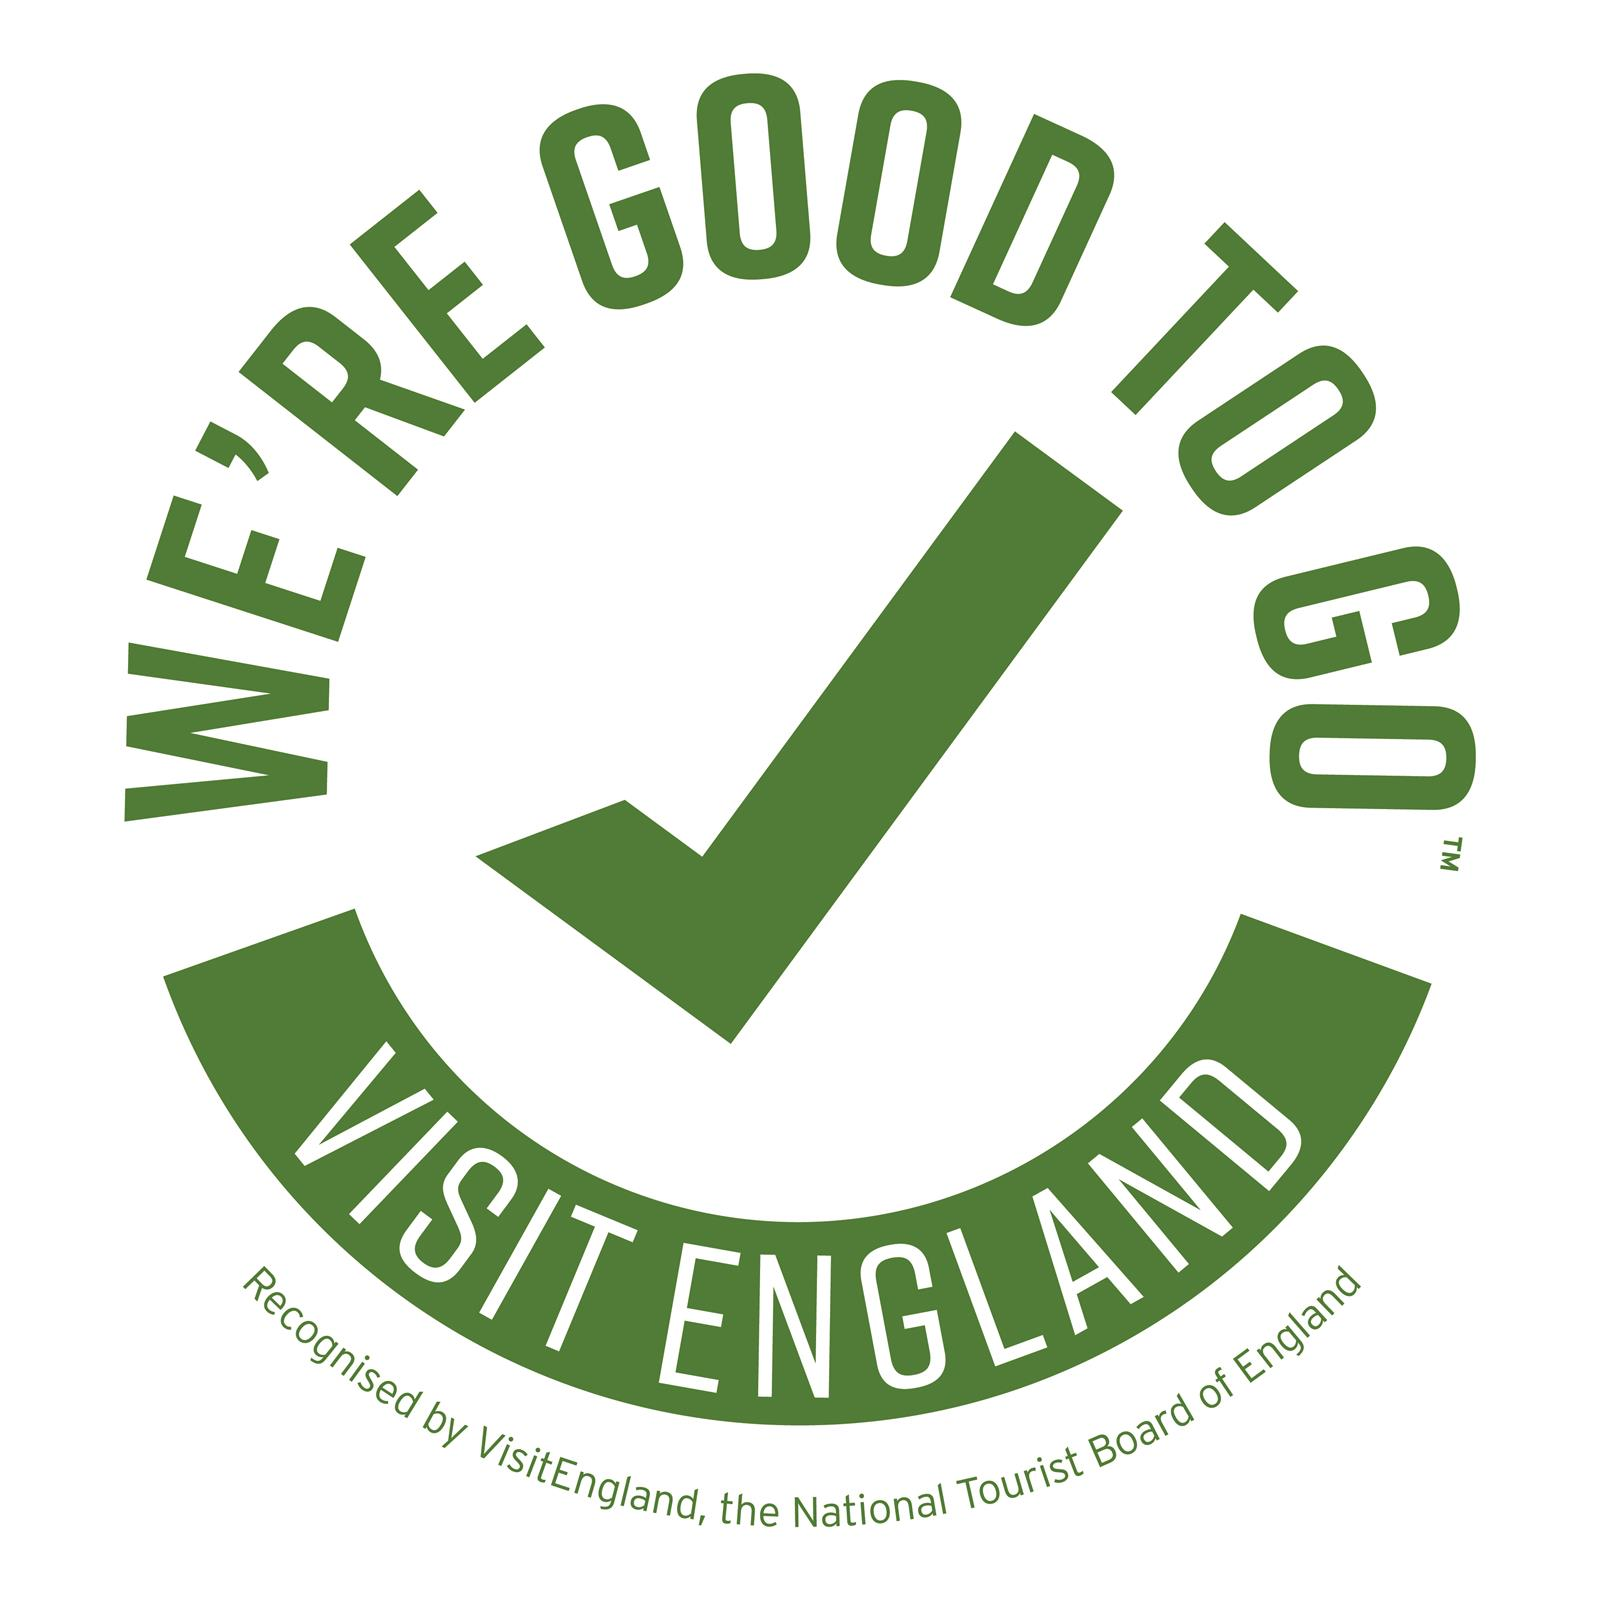 We're Good to Go-VisitEngland Covid-19 accreditation scheme